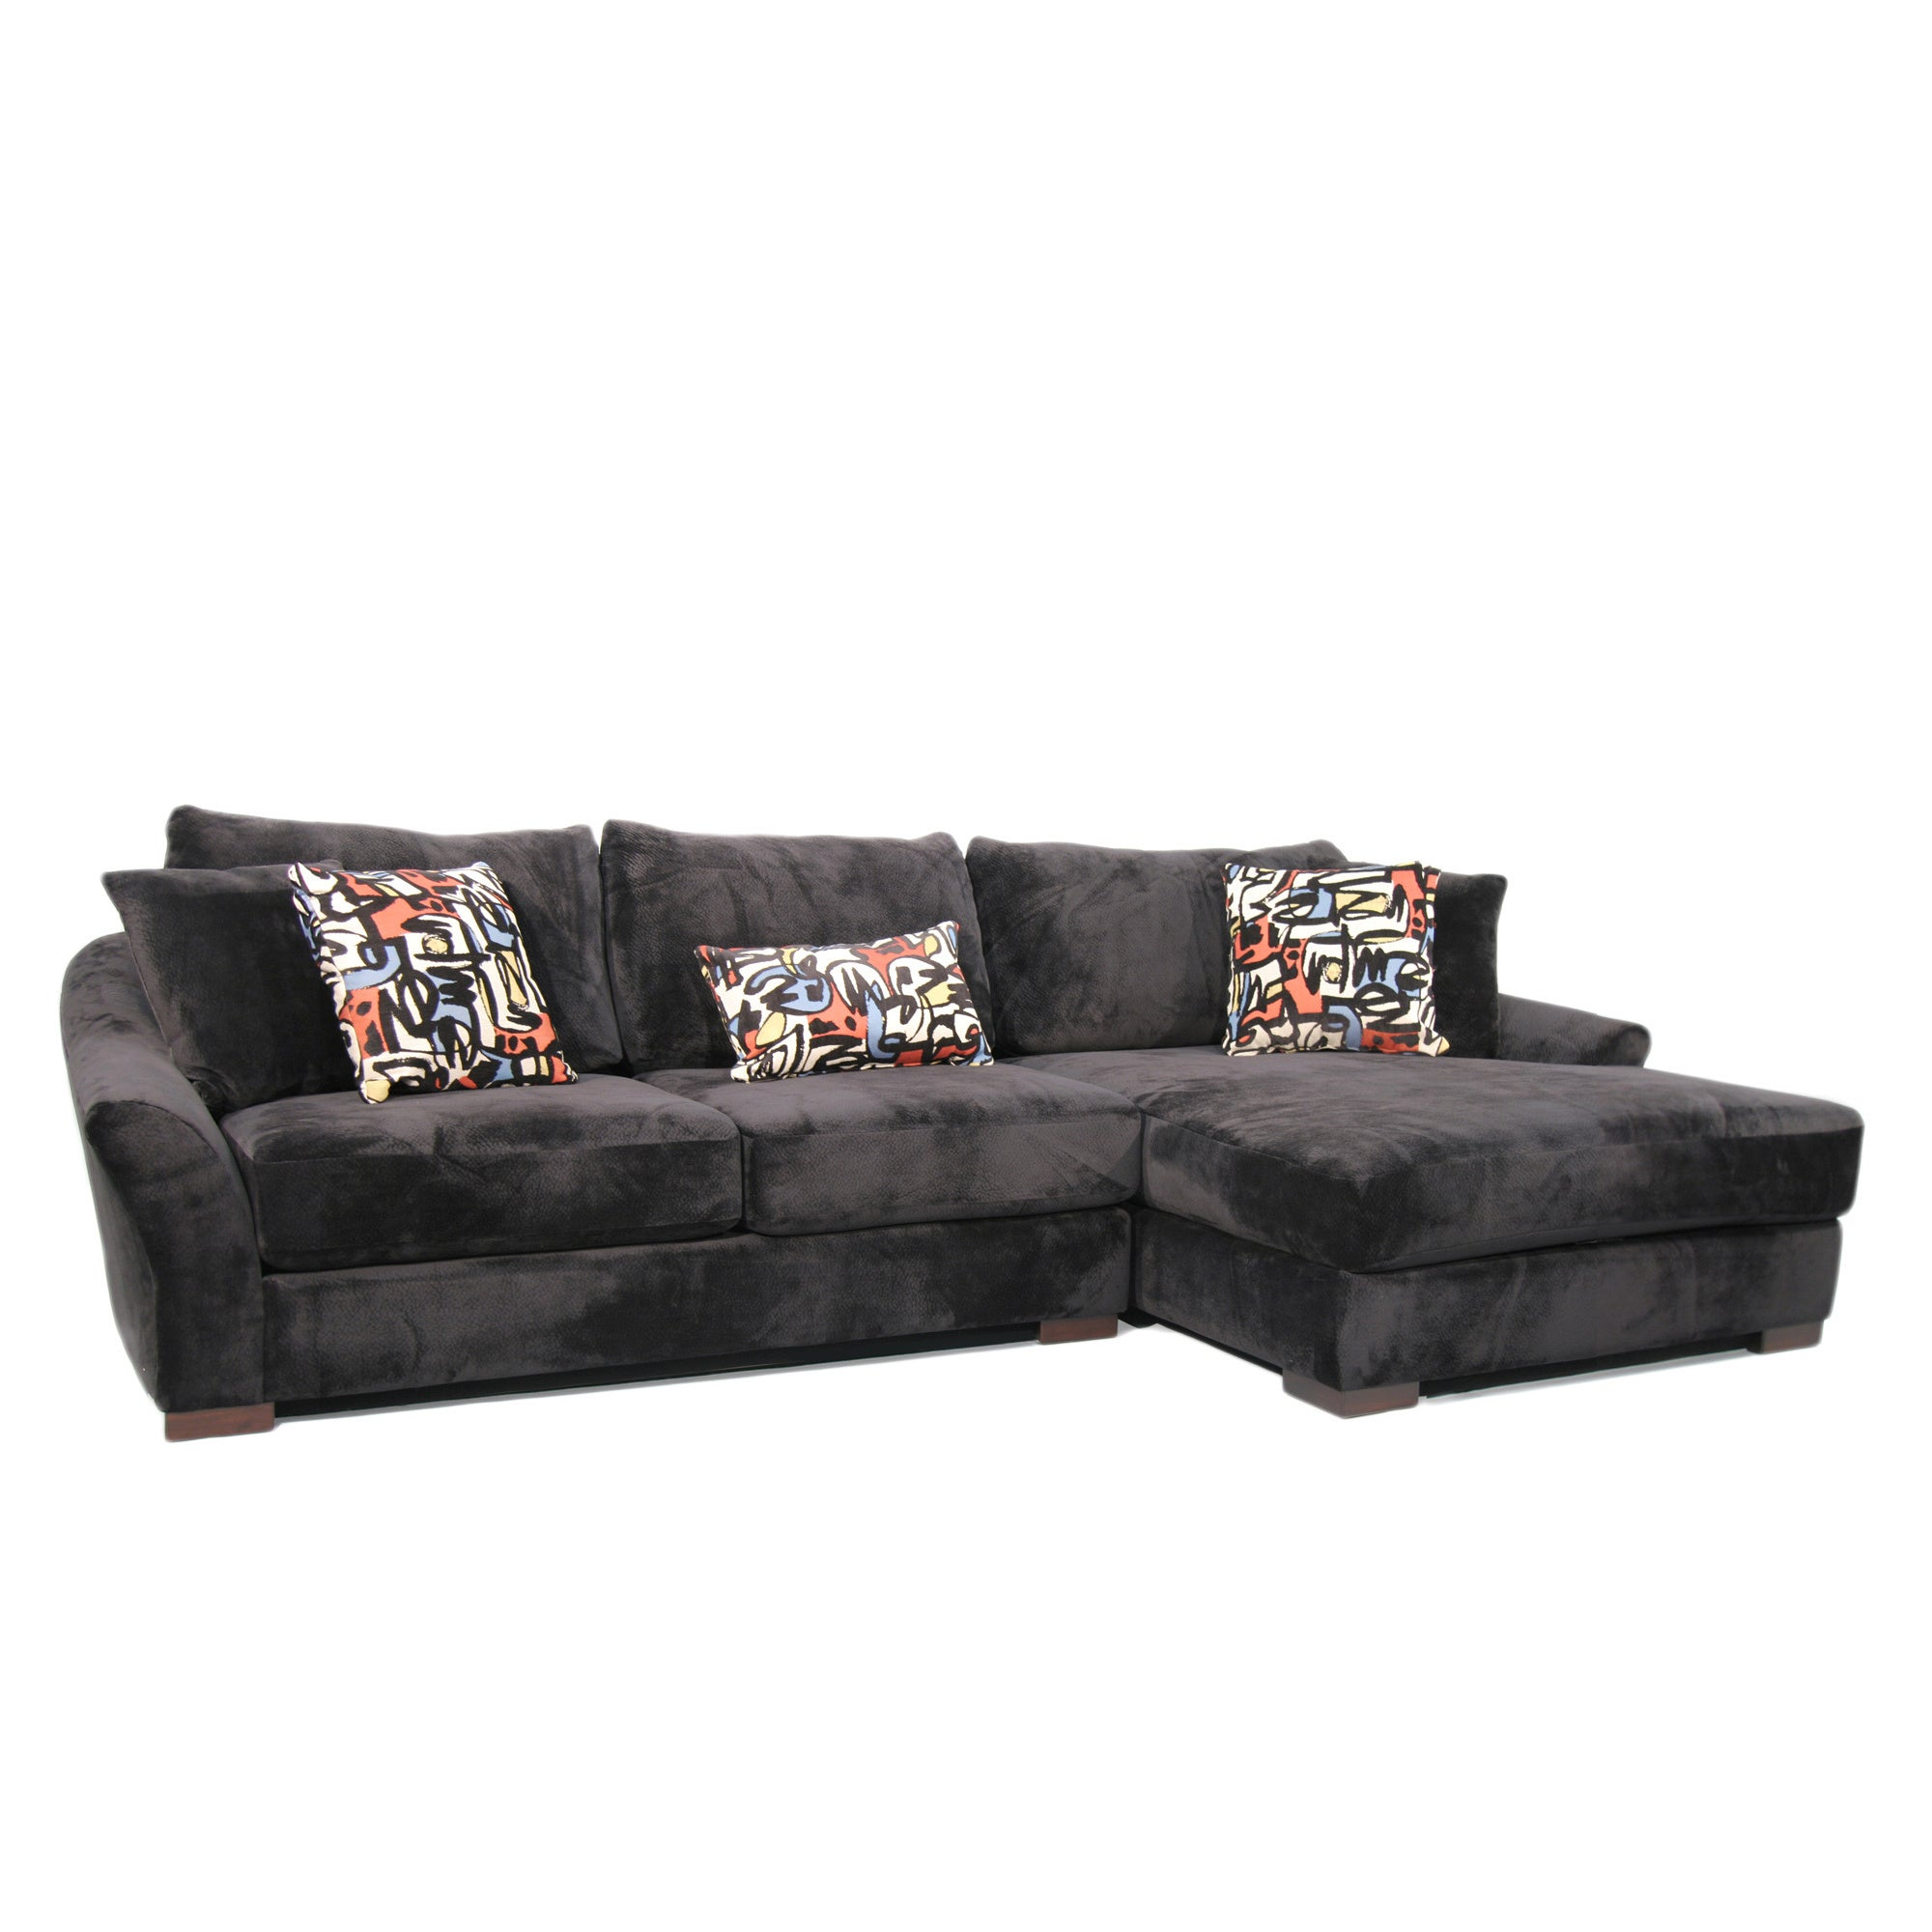 Fairmont Designs Made To Order Audrey 3-piece Ebony Sectional Sofa ...